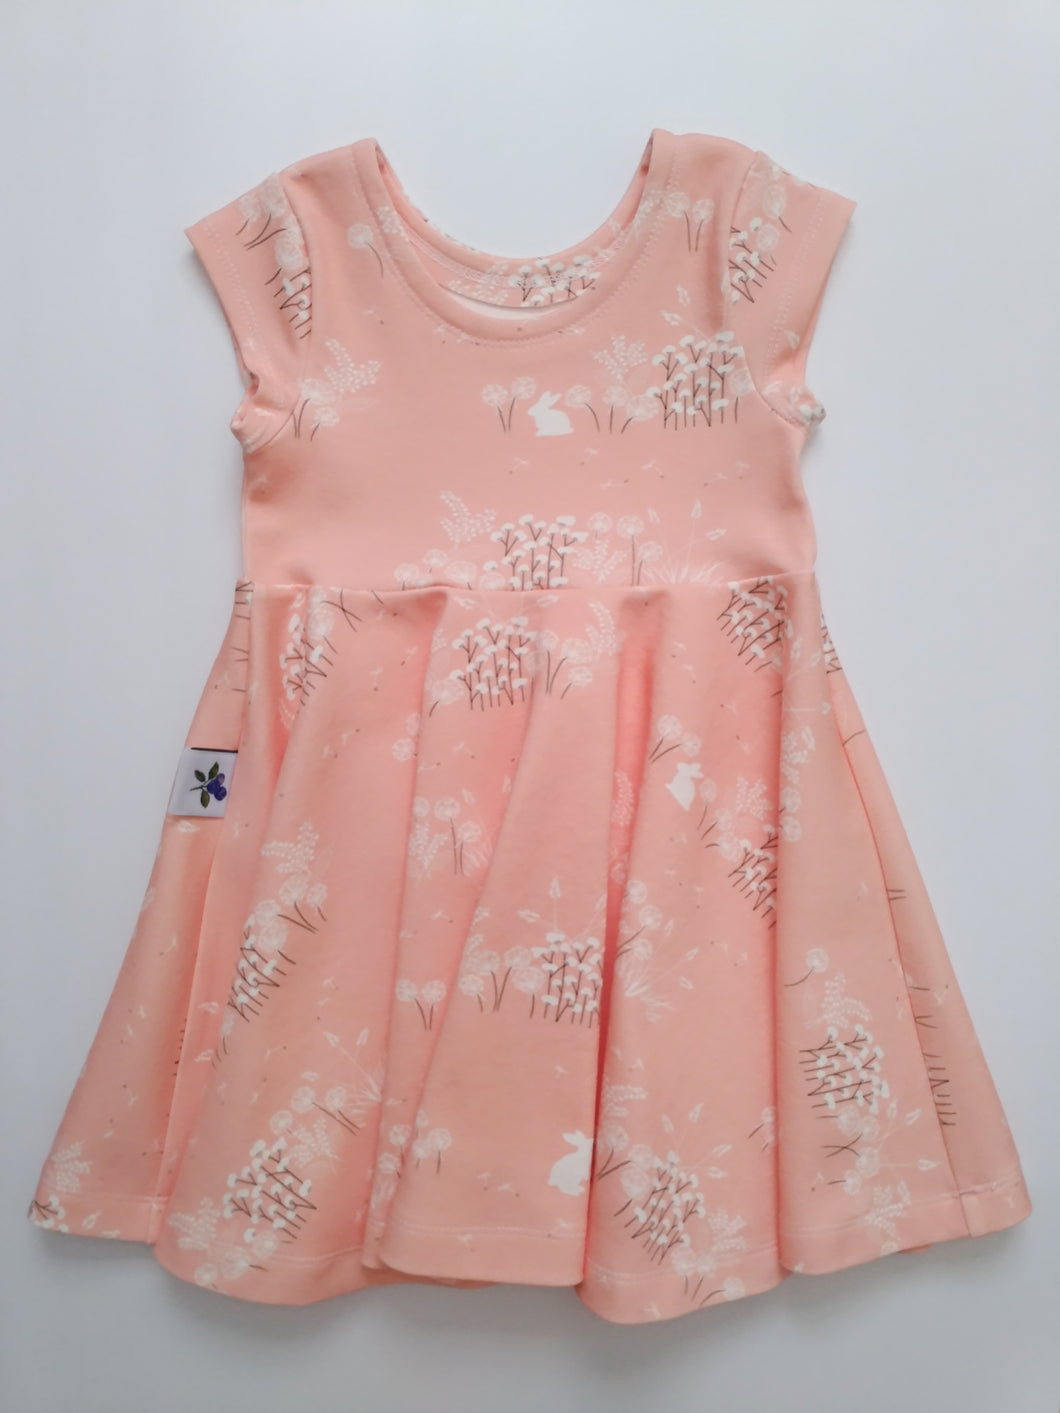 Infinity Dress - Bunny's Day in Peach - Organic Cotton Knit, sizes 9/12 months - 6 years